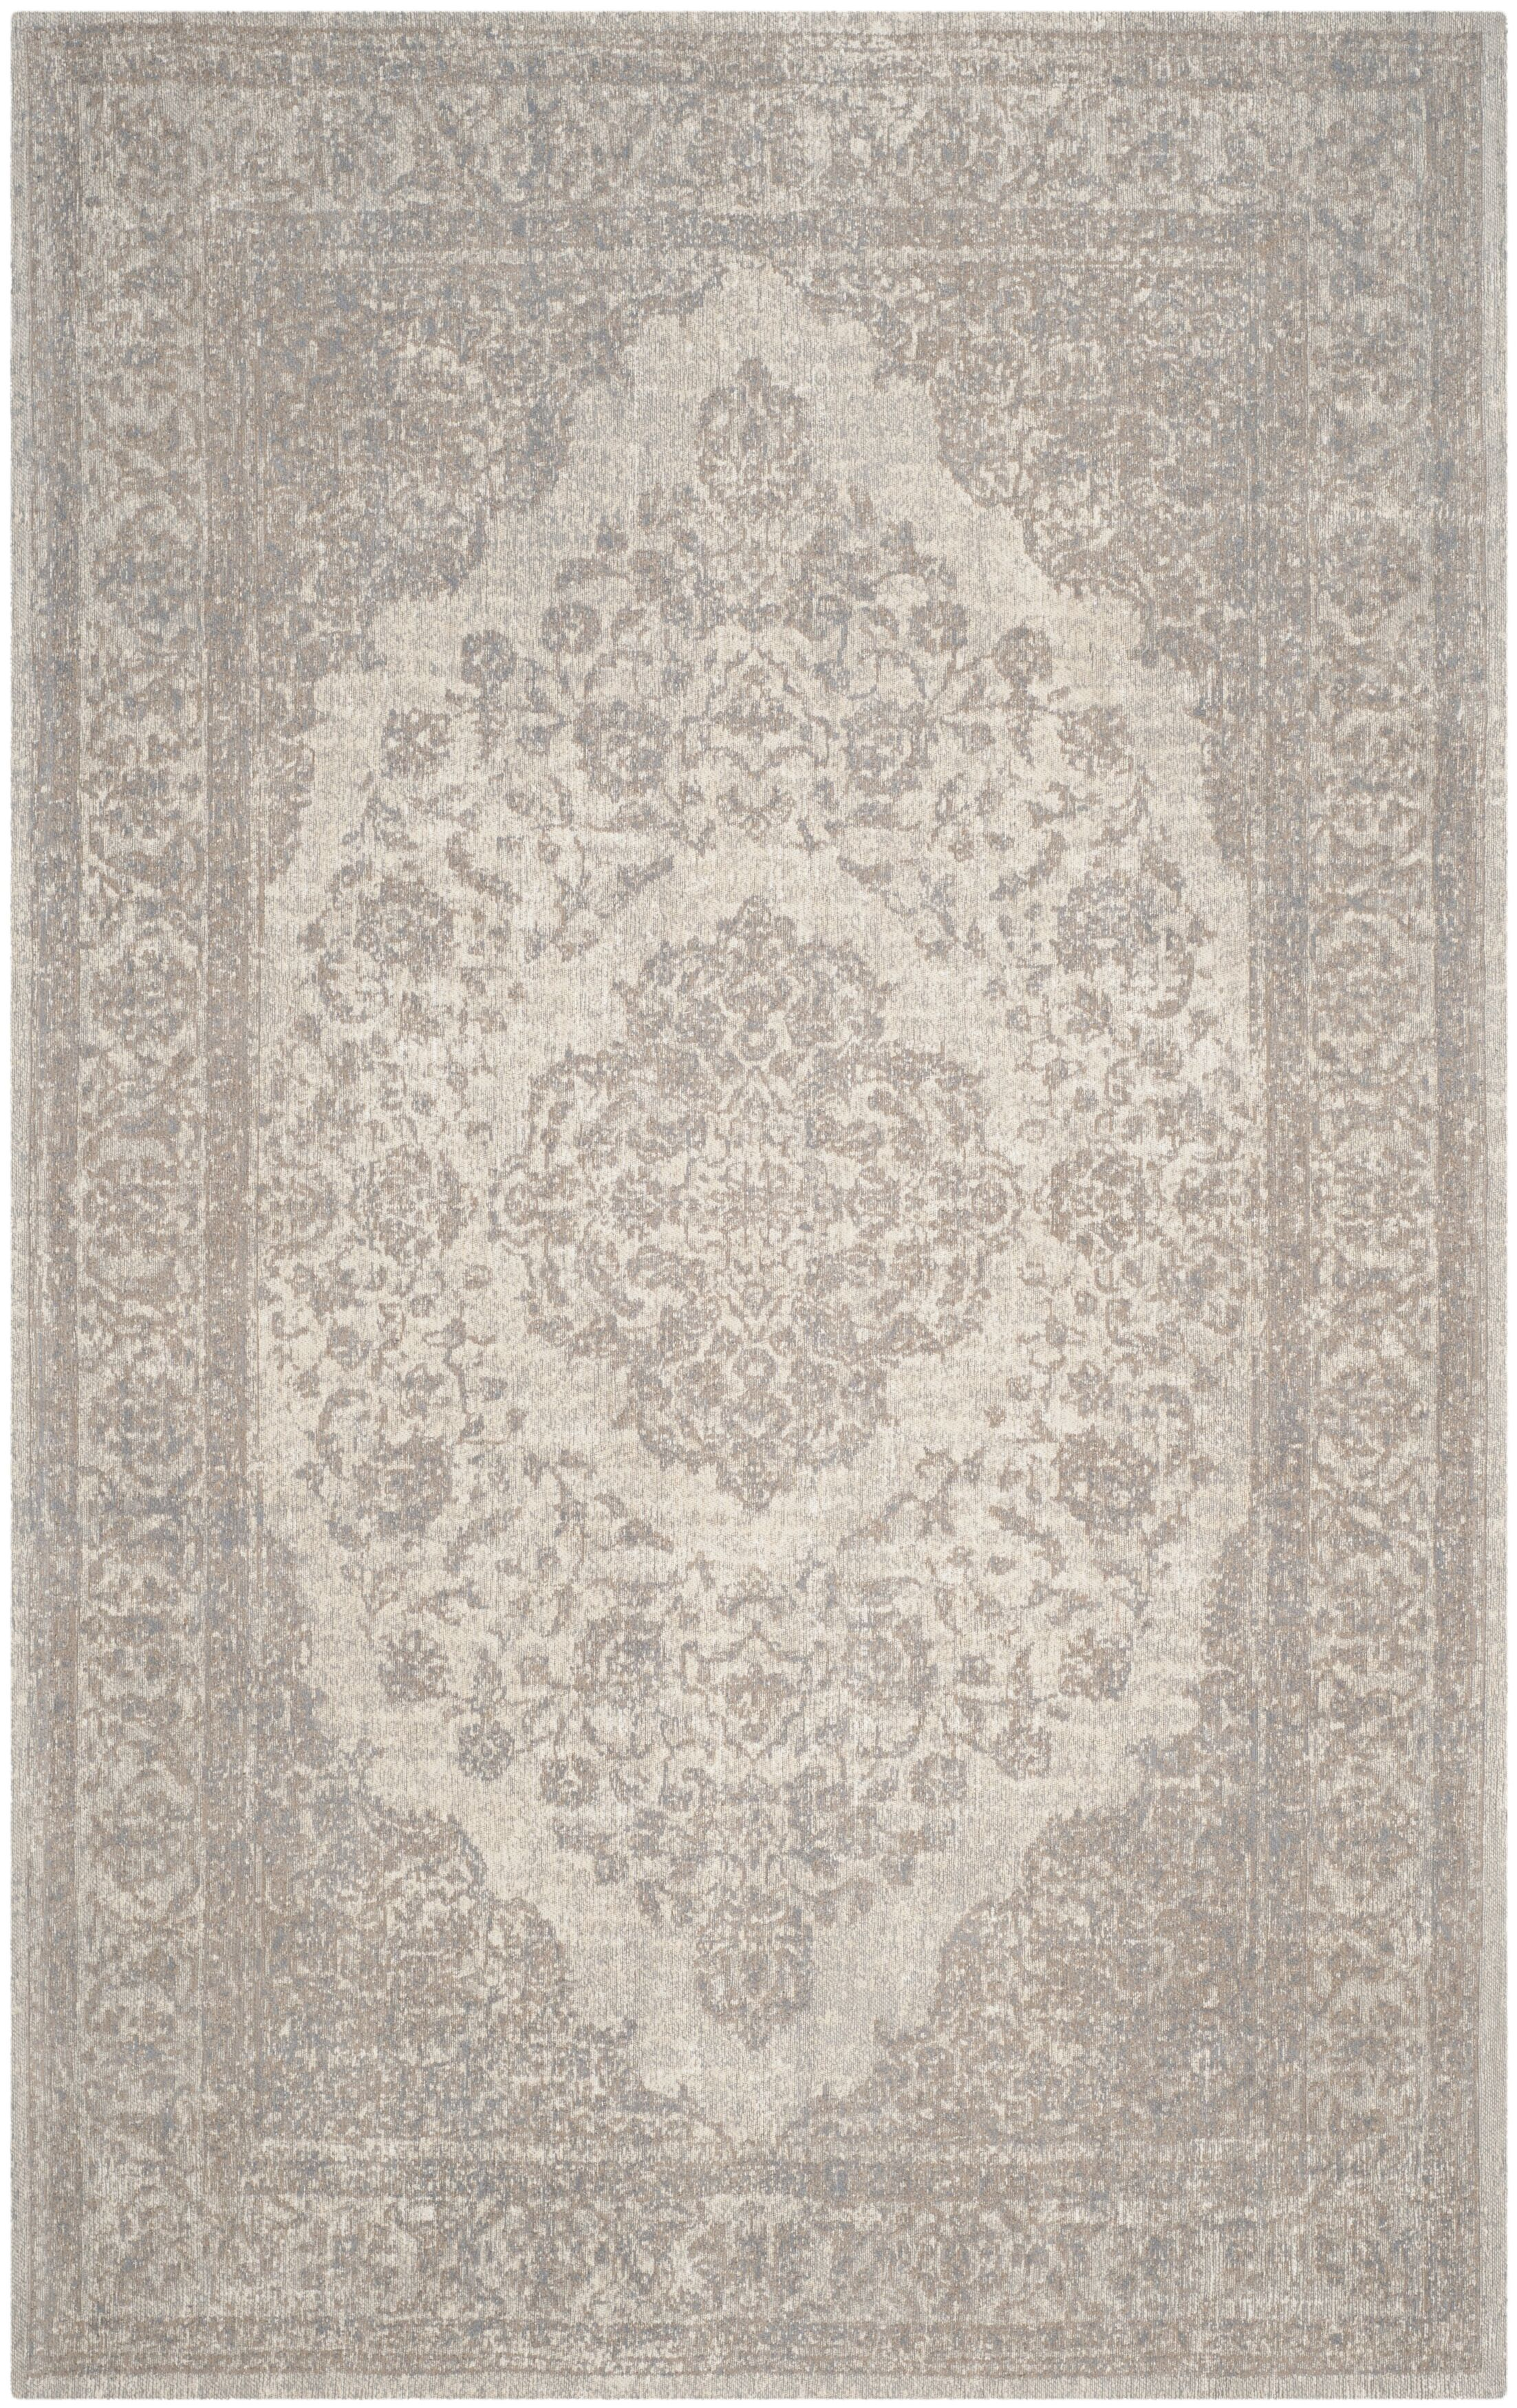 Middleborough Cotton Beige/Gray Area Rug Rug Size: Rectangle 5' x 8'